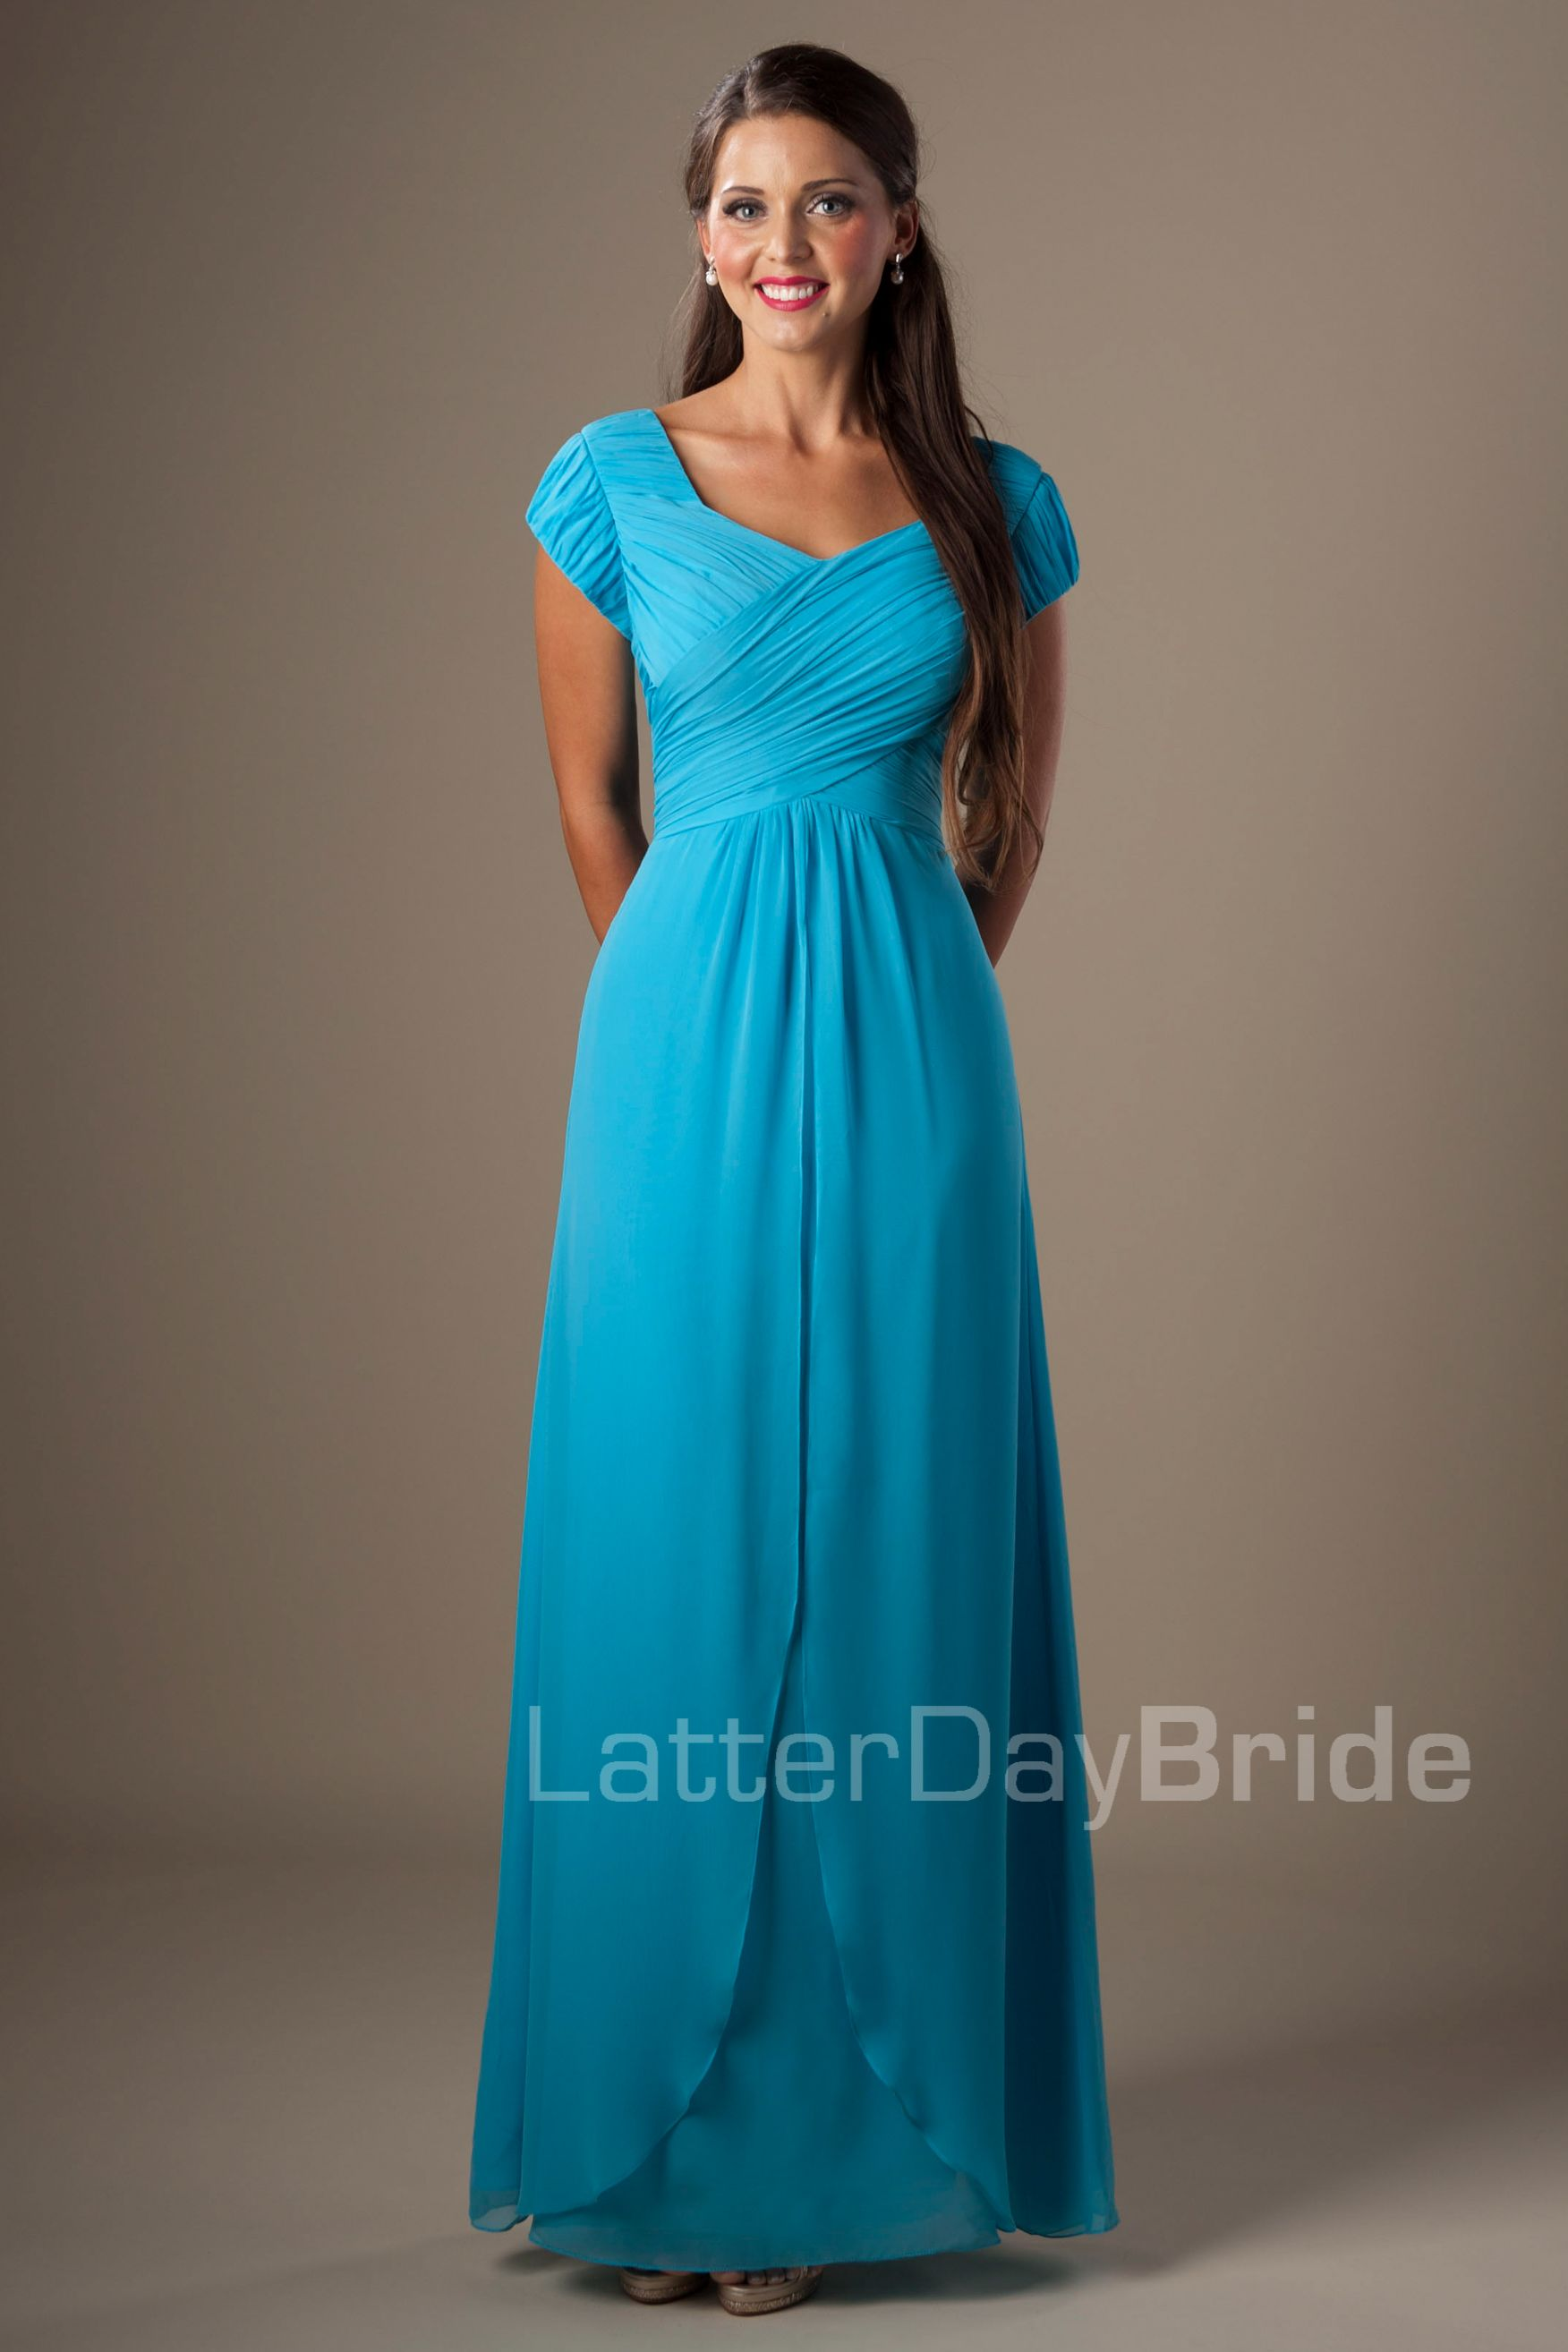 Bridesmaid Dresses Salt Lake City Gallery - Braidsmaid Dress ...